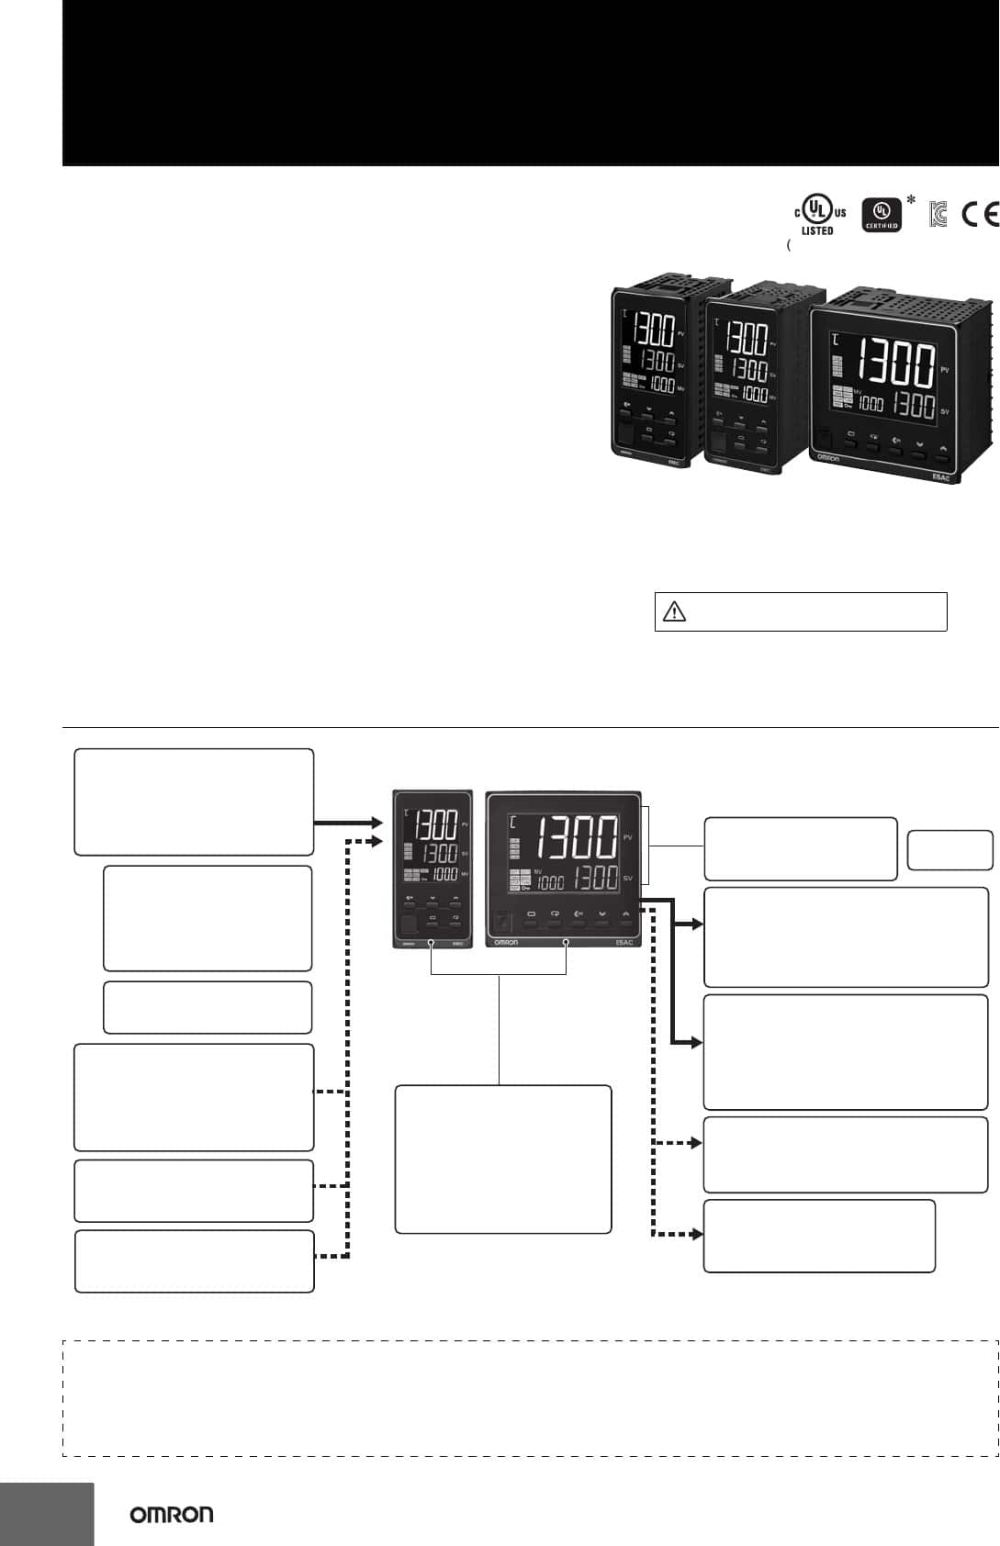 medium resolution of 40 digital temperature controller